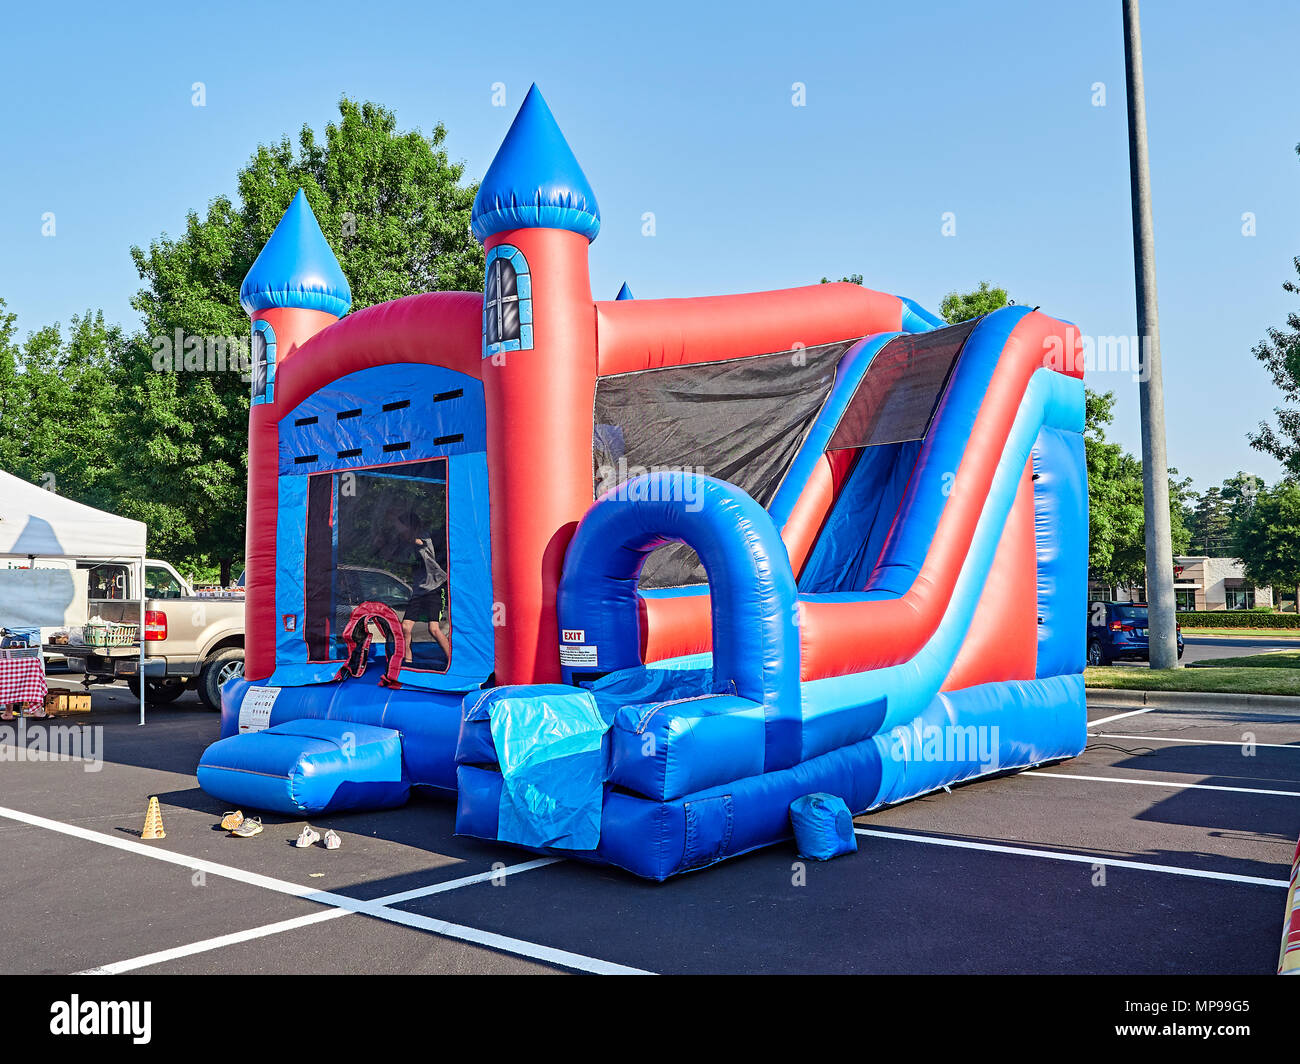 Inflatable bounce or bouncy house in shape of a castle designed for children at a local outdoor market in Montgomery Alabama, USA. - Stock Image